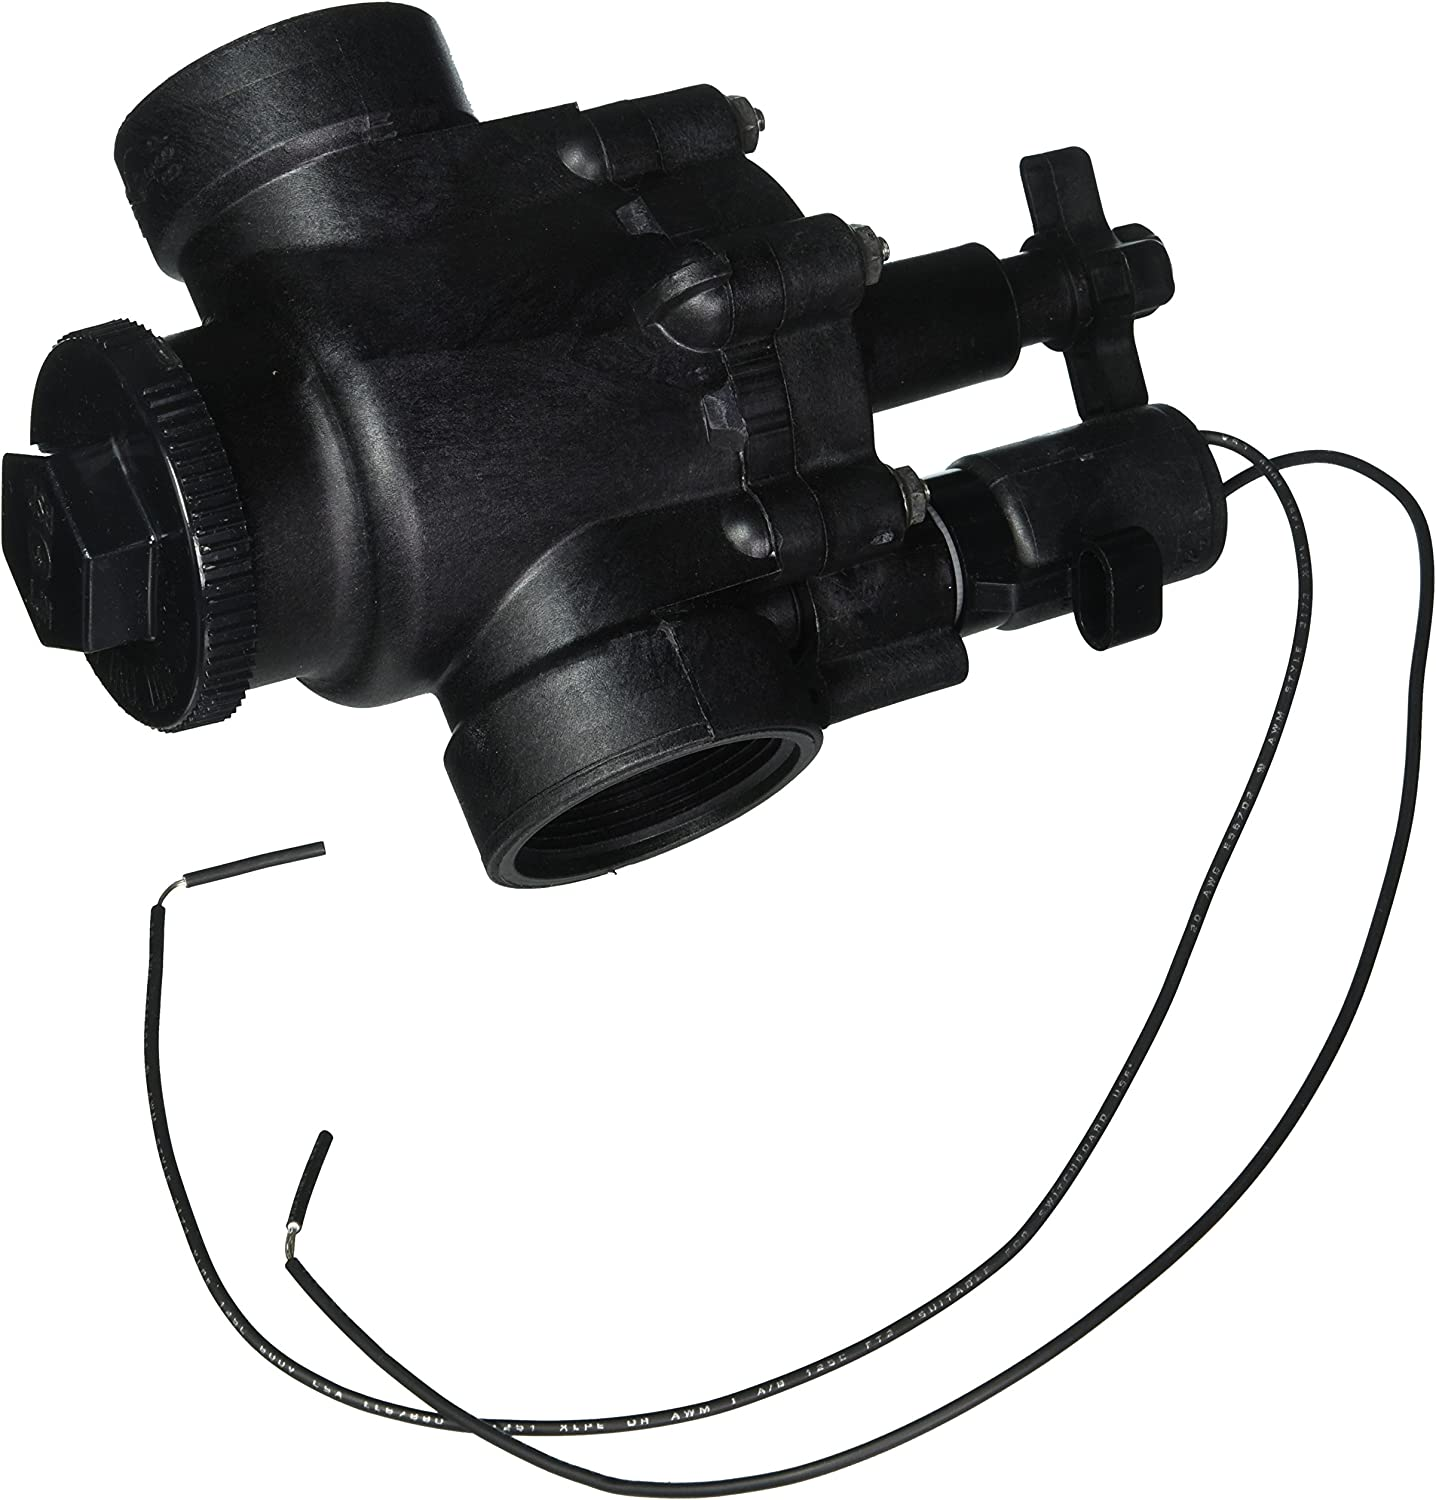 Irritrol Limited time sale 100P1.5 Century Plus NPT Valve with Flow Threaded Contr Max 83% OFF